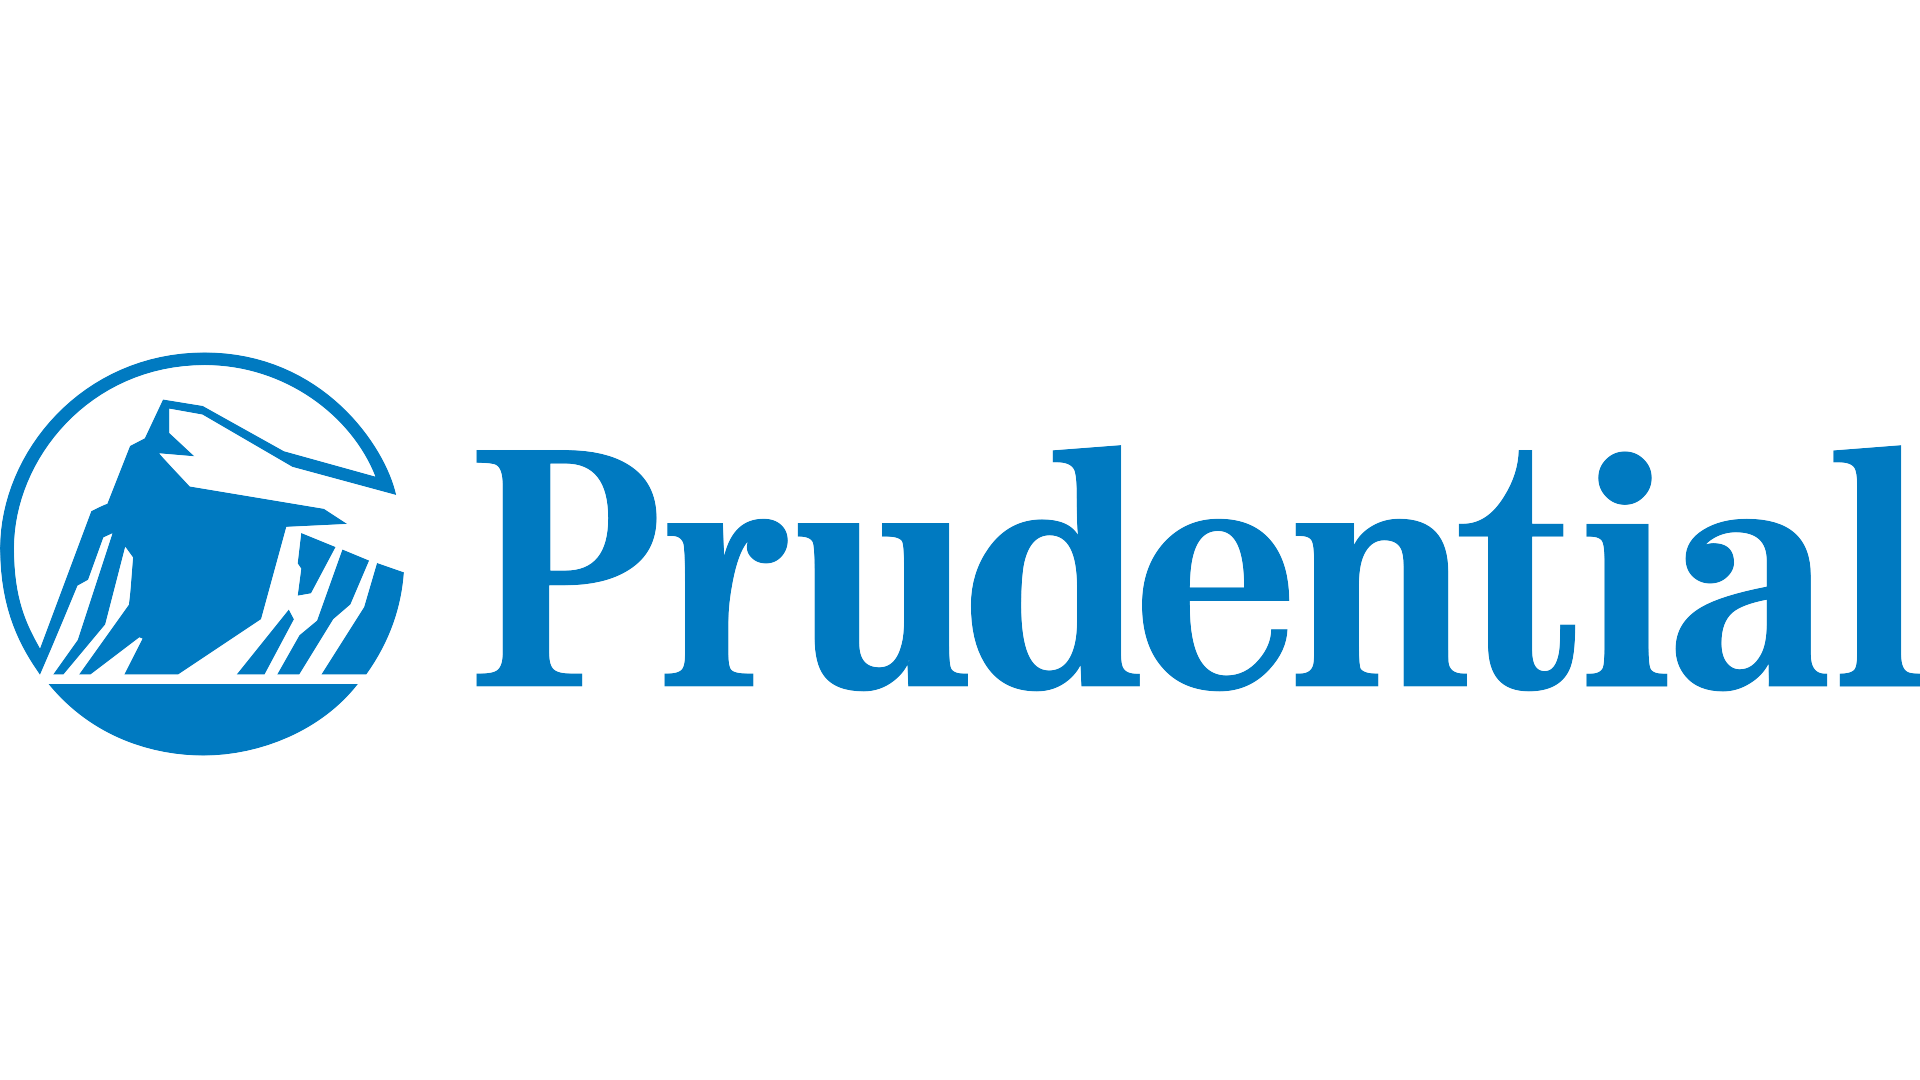 Watch the job video below to learn more about the career opening Finance at Prudential in Newark,   NJ,   USA